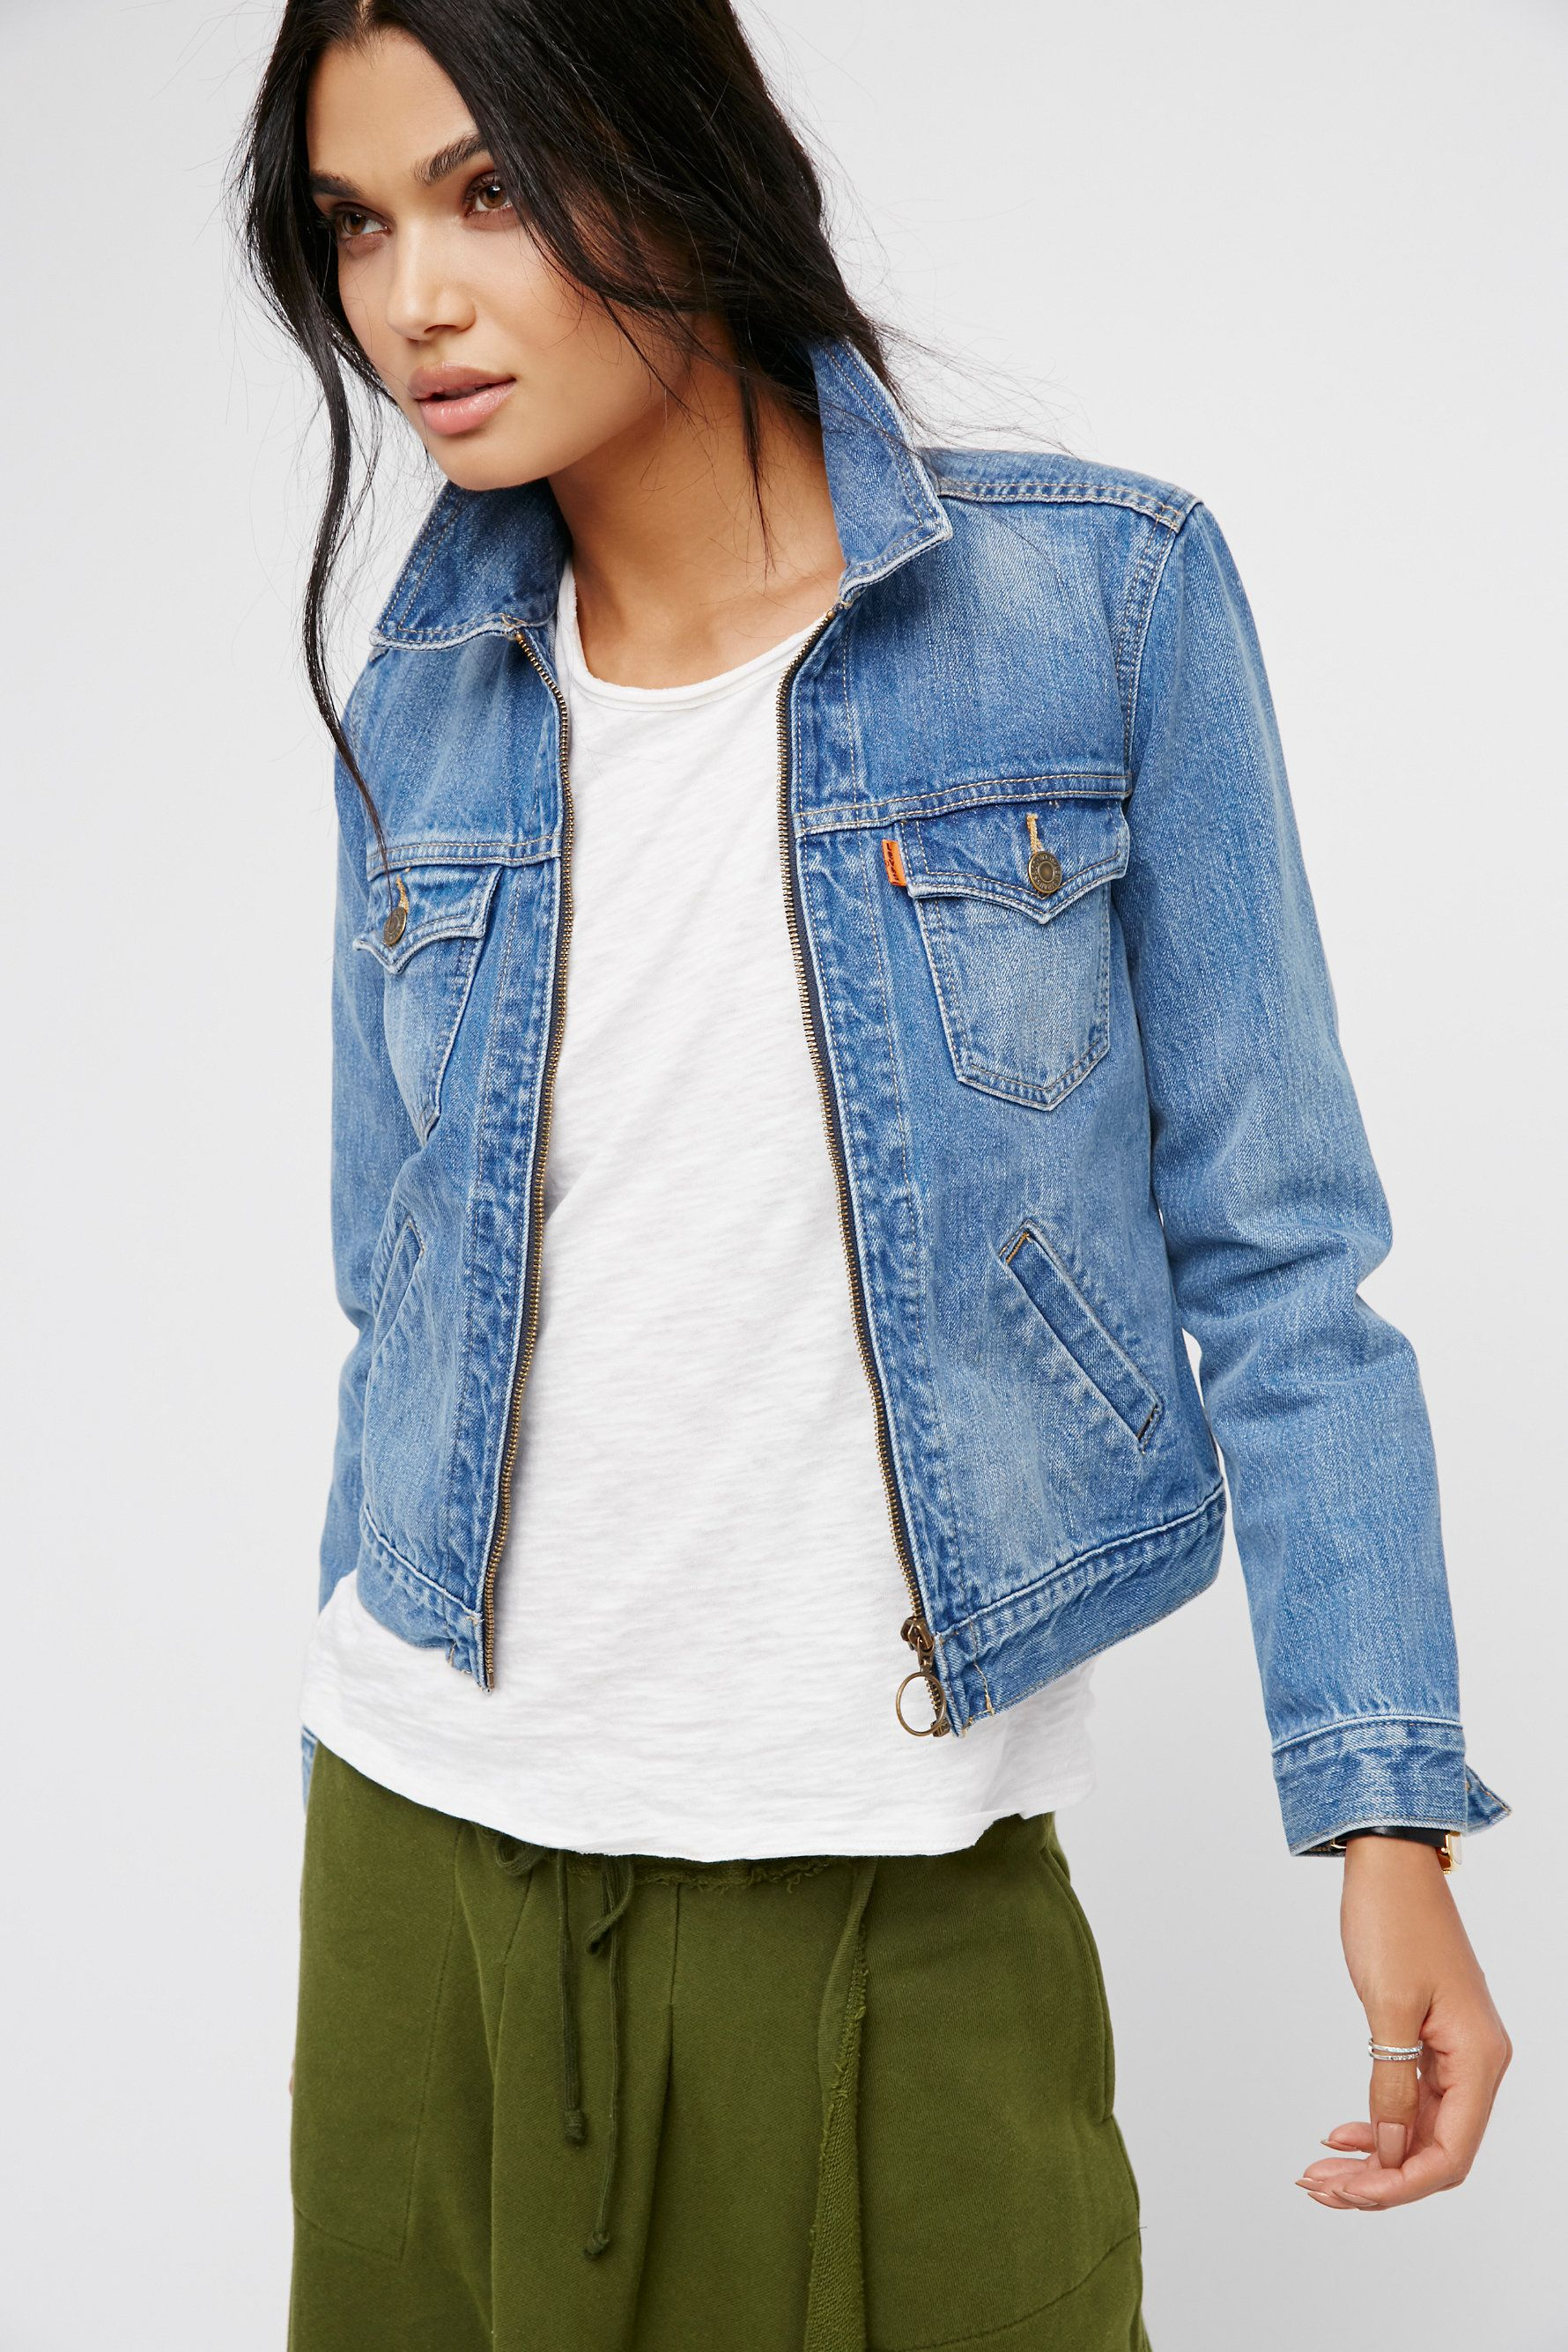 Zip Front Trucker | Retro-inspired trucker style denim jacket featuring a cute circle zipper pull. Four front pocket details.